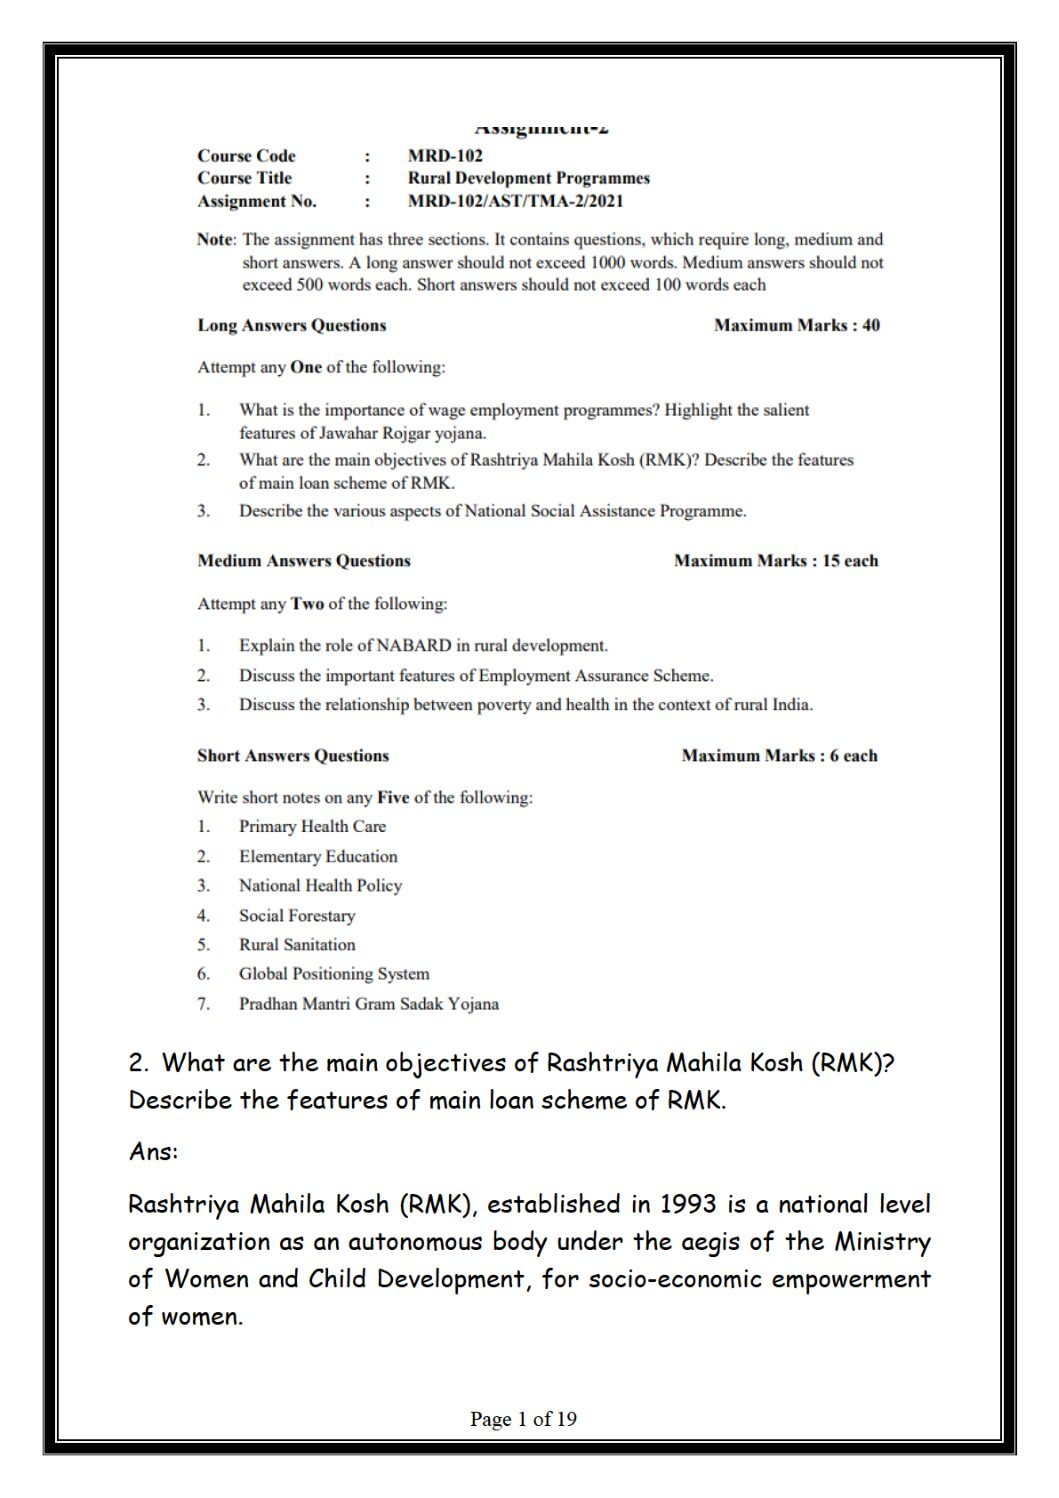 MRD-102 (PGDRD) Rural Development Programmes in English SOLVED ASSIGNMENT 2021